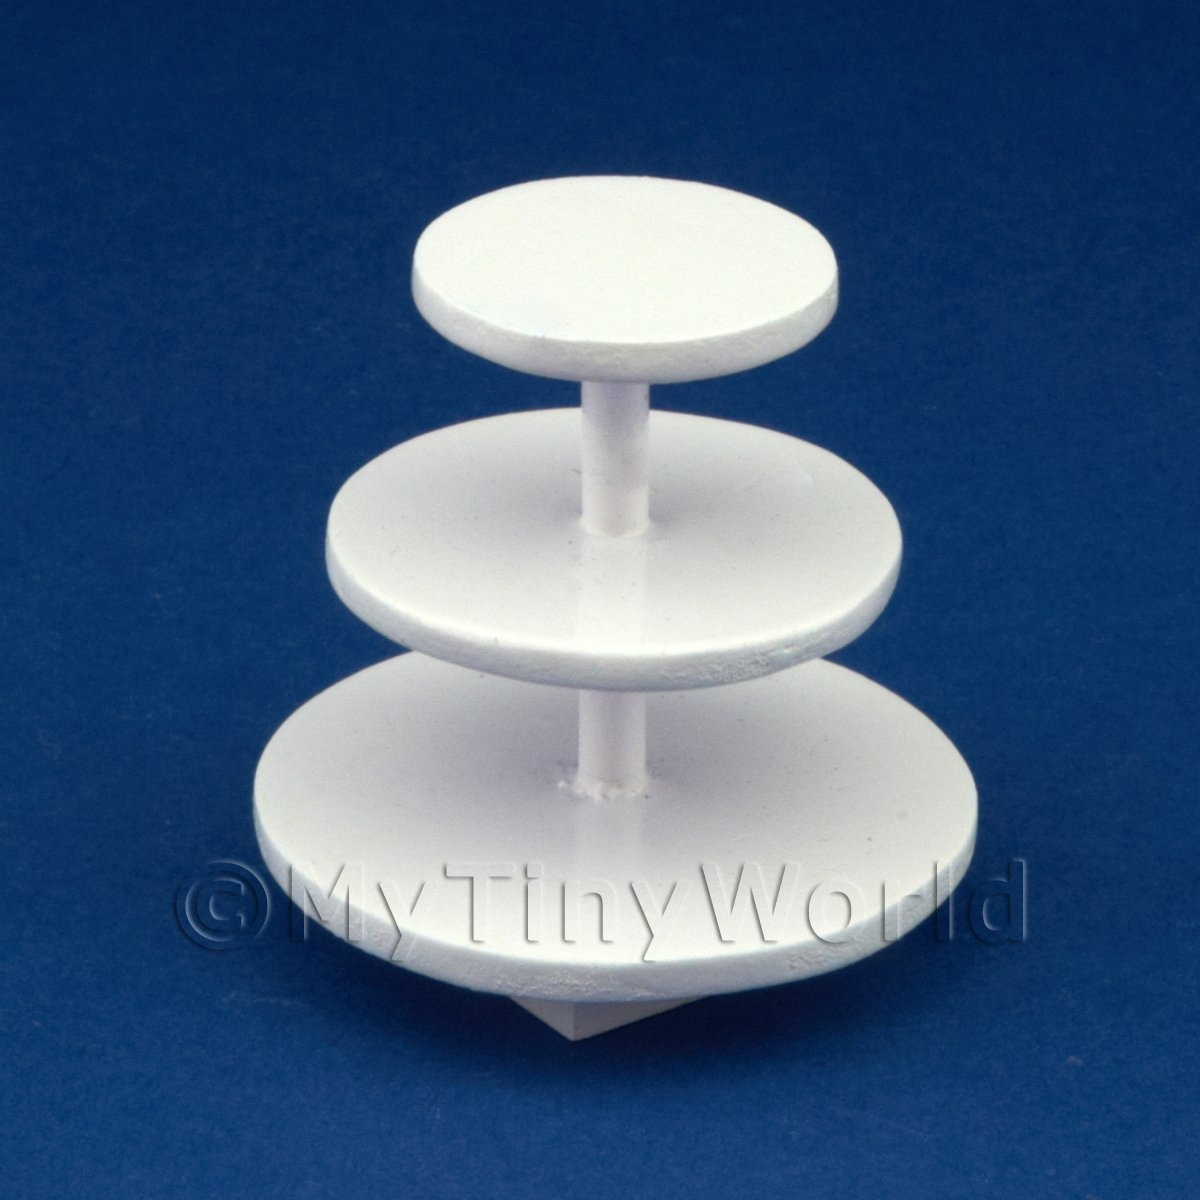 Dolls House Miniature 3 Tier Hardwood Cake Stand